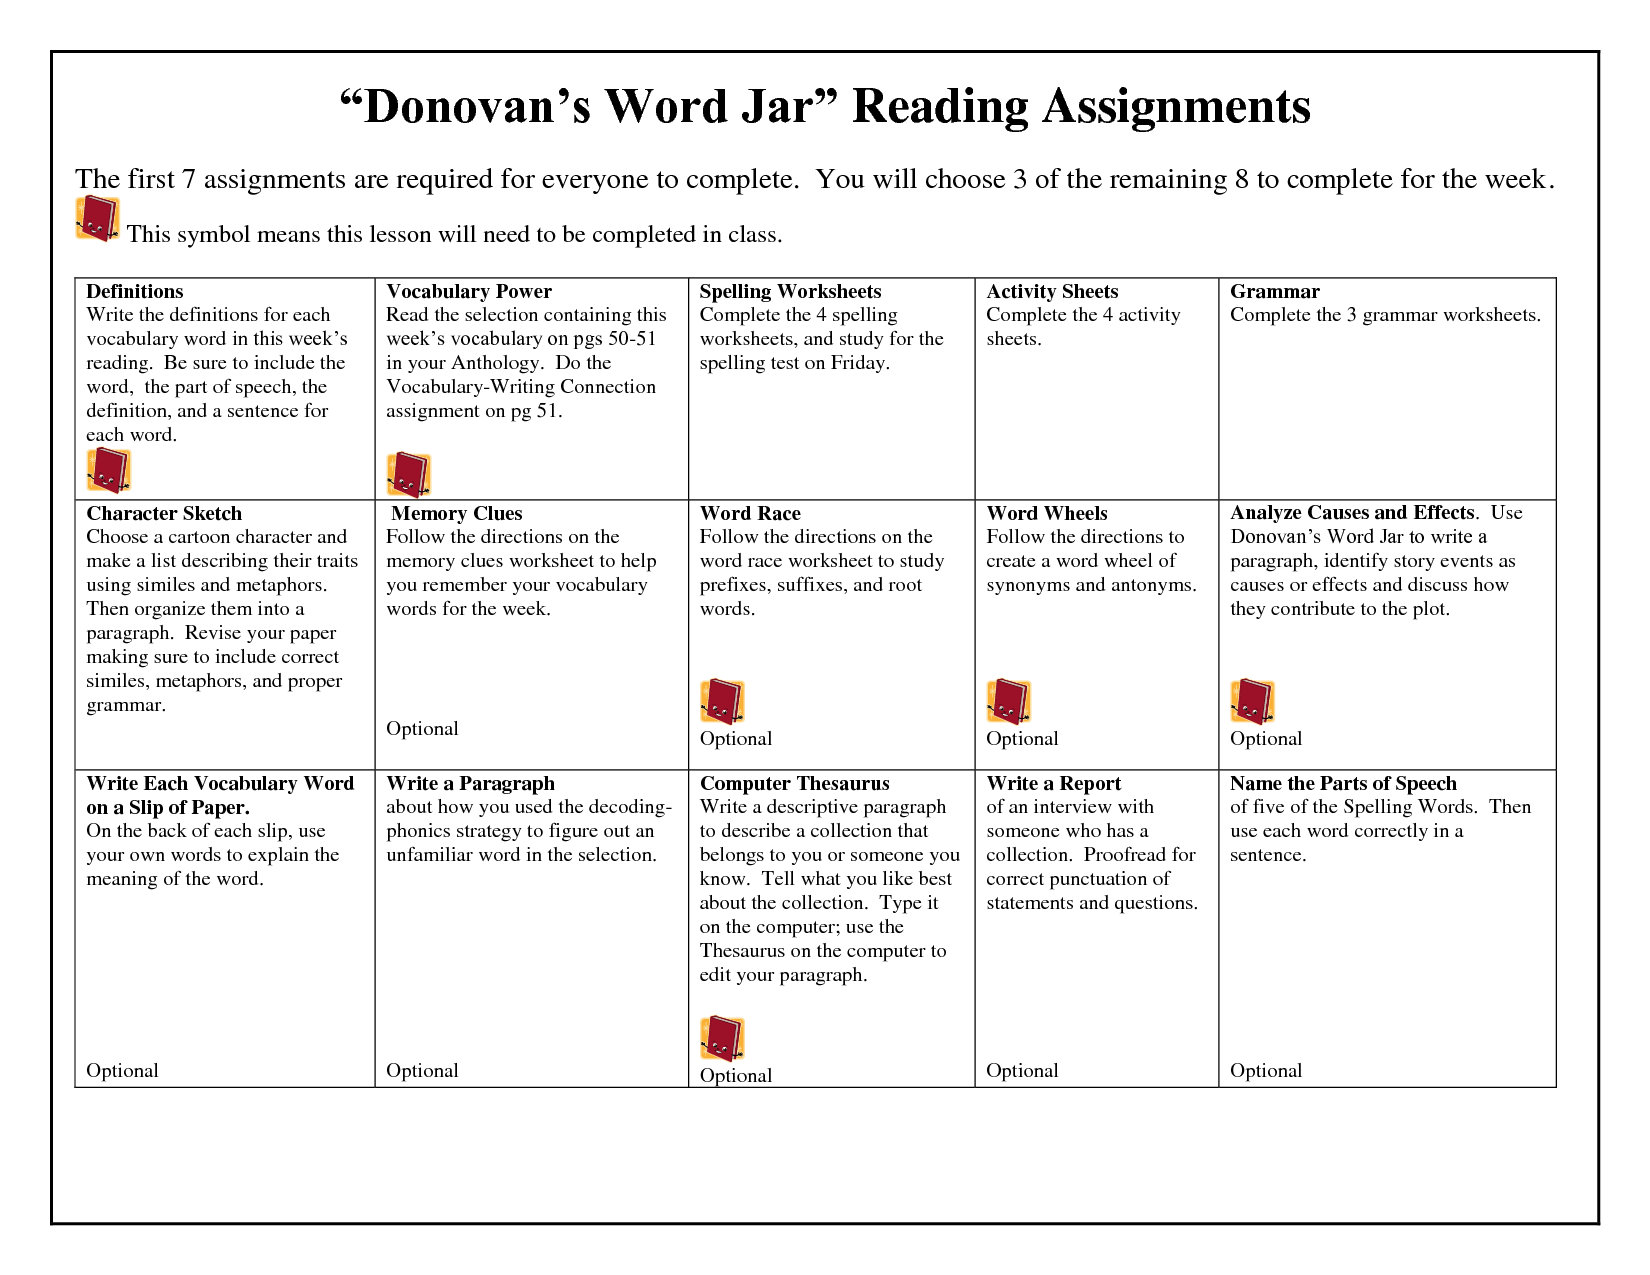 Worksheet Vocabulary Enrichment Worksheets 17 best images about vocabulary on pinterest spelling worksheets close reading activities and activities